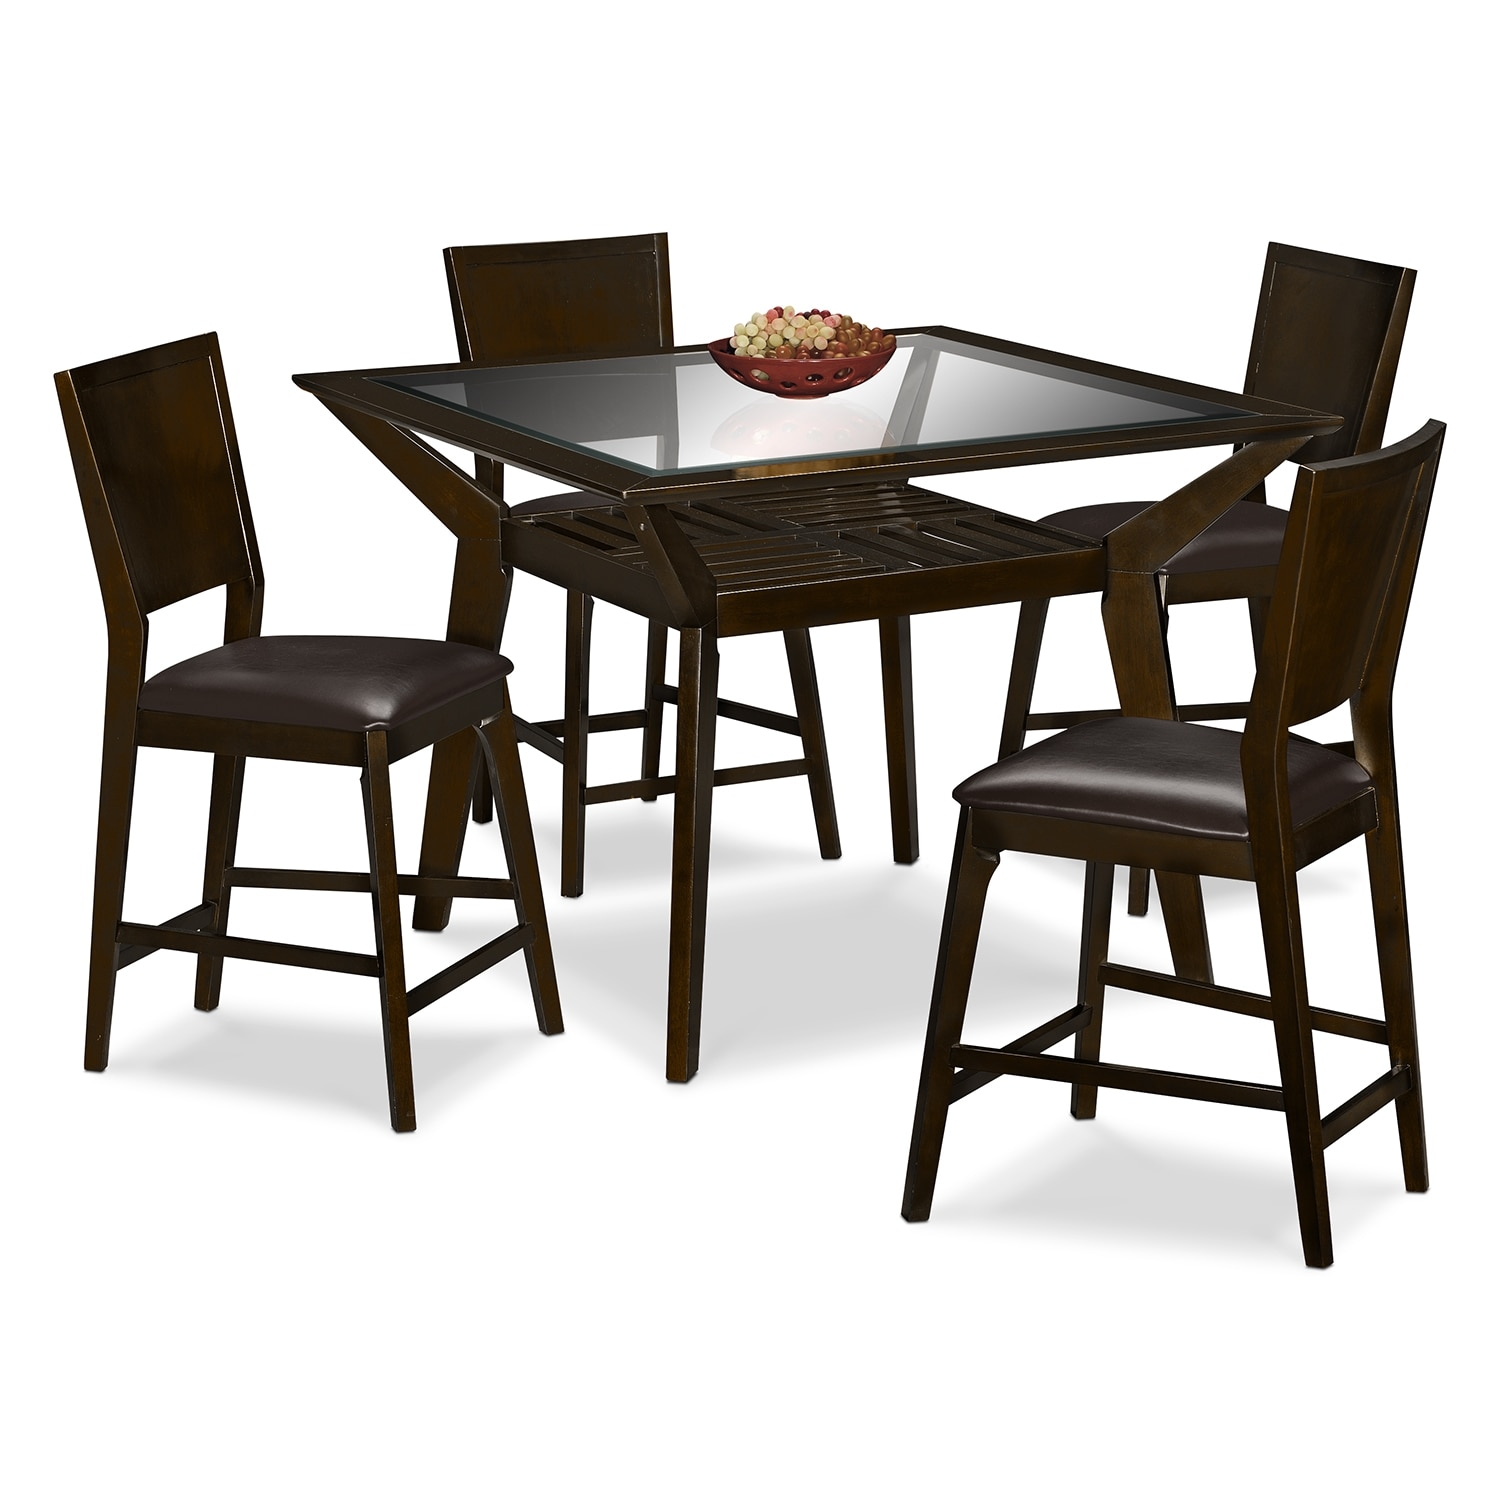 Dining Furniture Outlet: Mystic Counter-Height Table And 4 Chairs